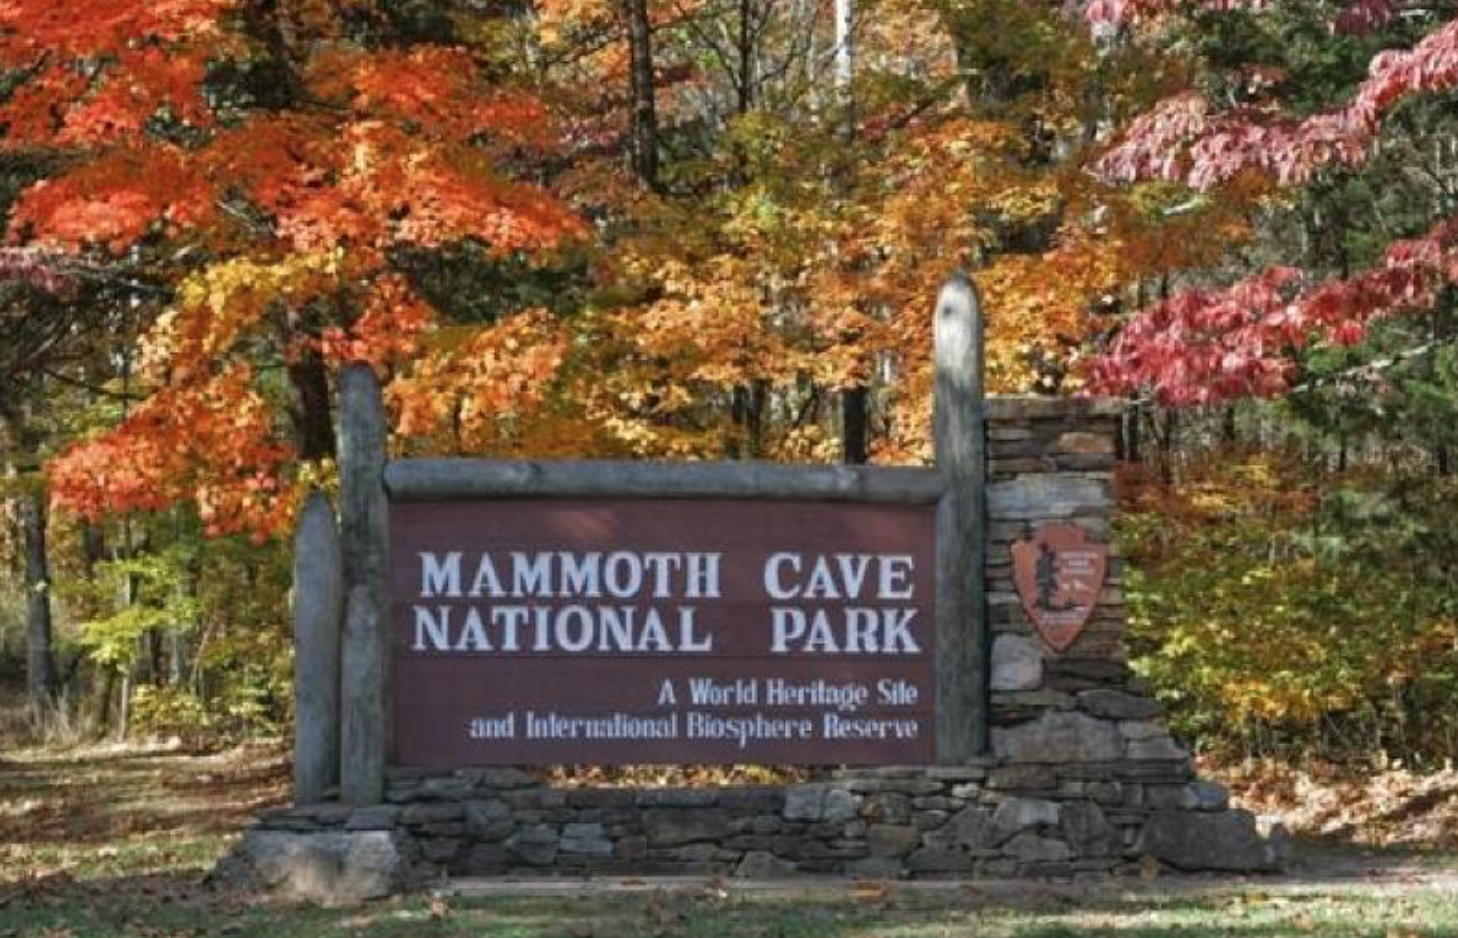 Our Camping Trip to Mammoth Cave